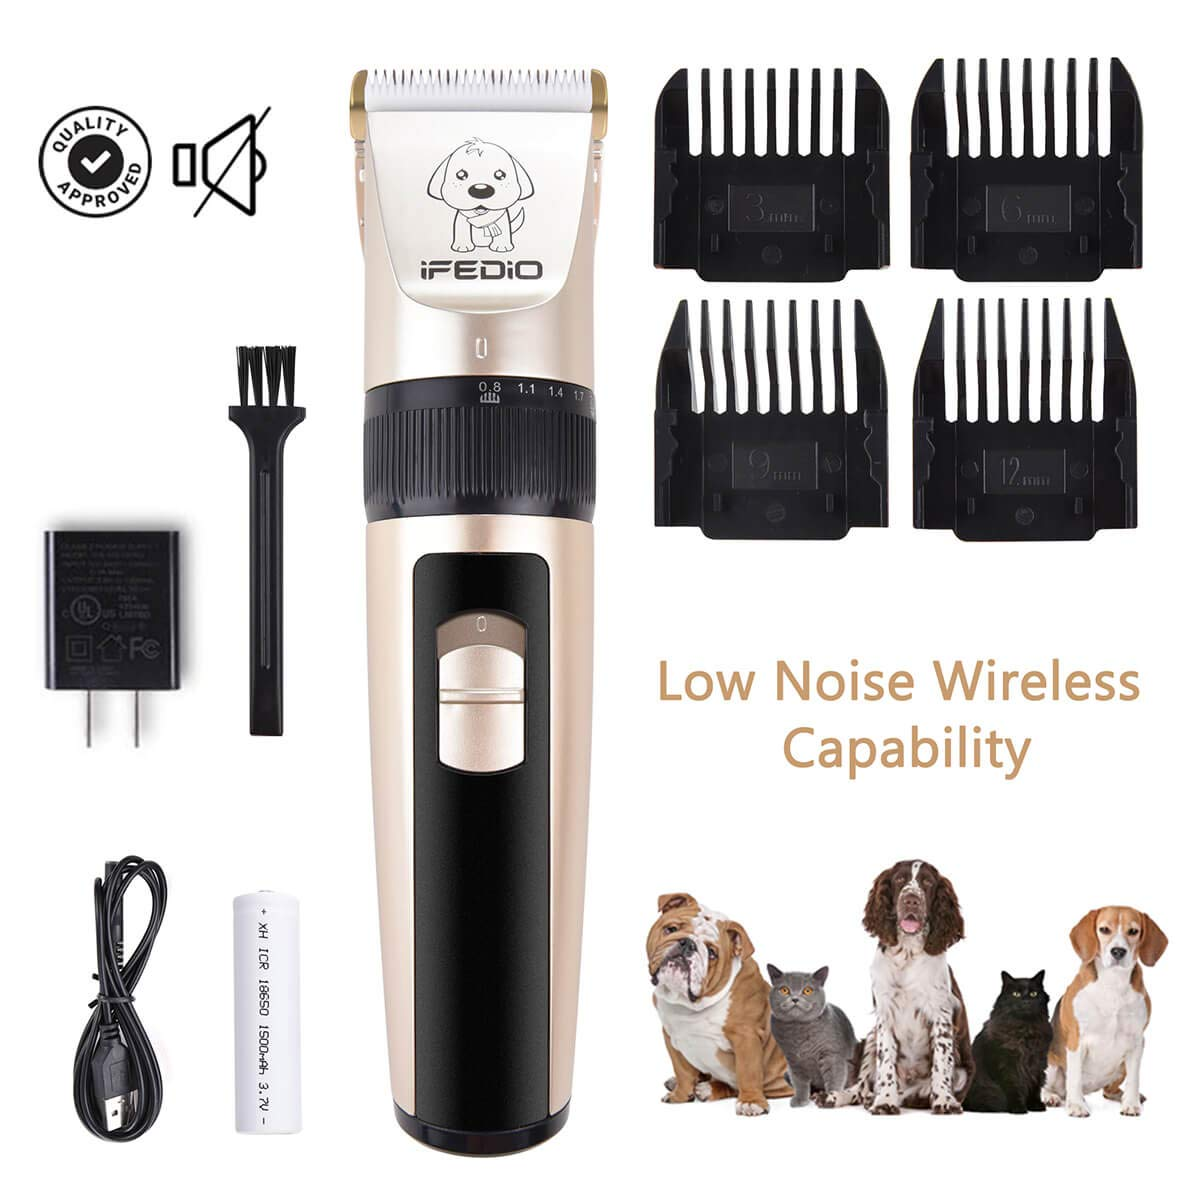 iFedio Dog Clippers Low Noise Cordless Pet Grooming Clippers Trimmer Professional Heavy Duty Rechargeable Cat Grooming Kit Electric Hair Clipper Set for Pets Cats Dogs Puppy